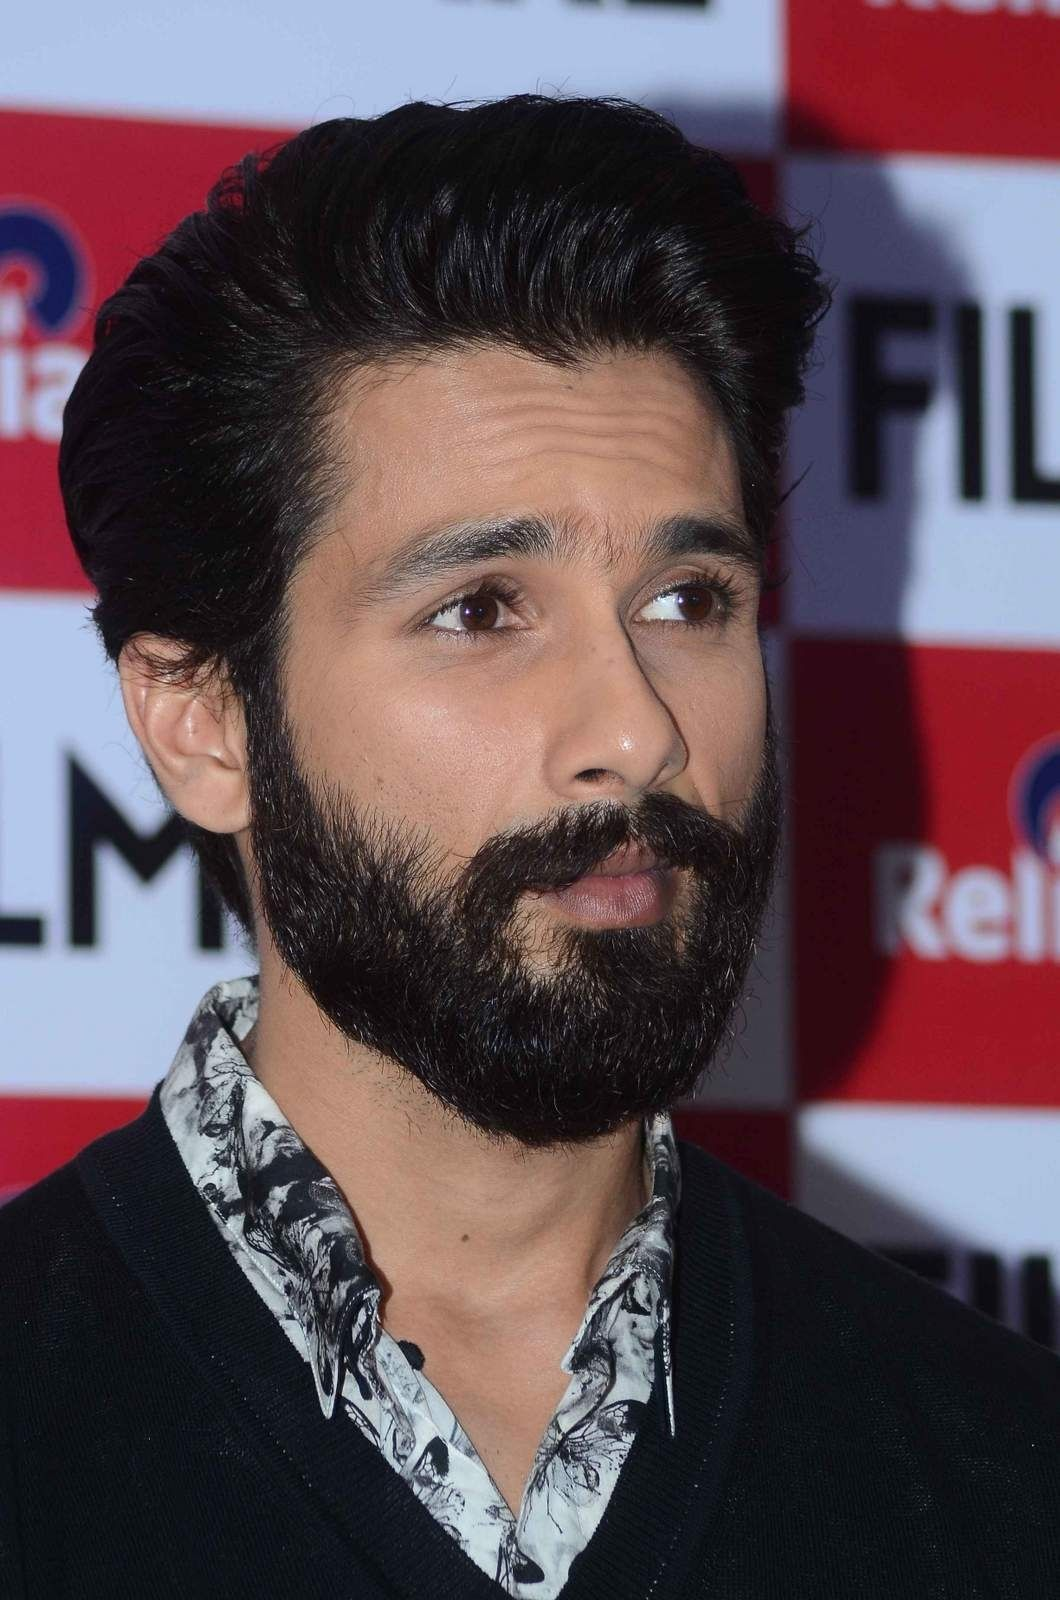 shahid kapoor hd images, photos and pictures free download